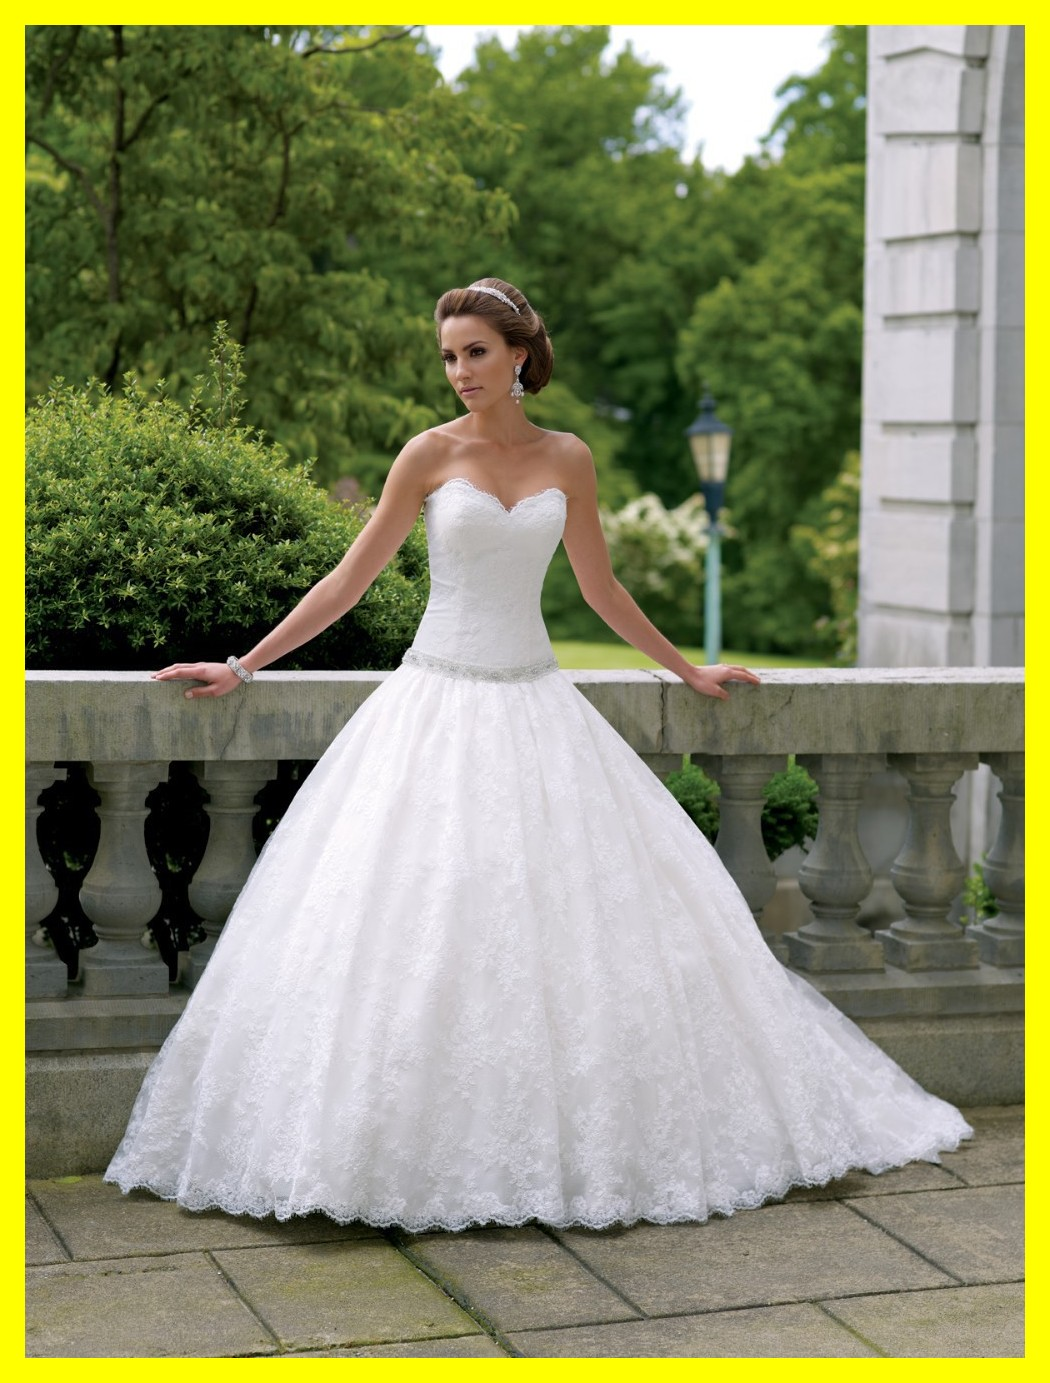 Hire a wedding dress classy dresses long sleeved jj casual for Jj wedding dresses reviews